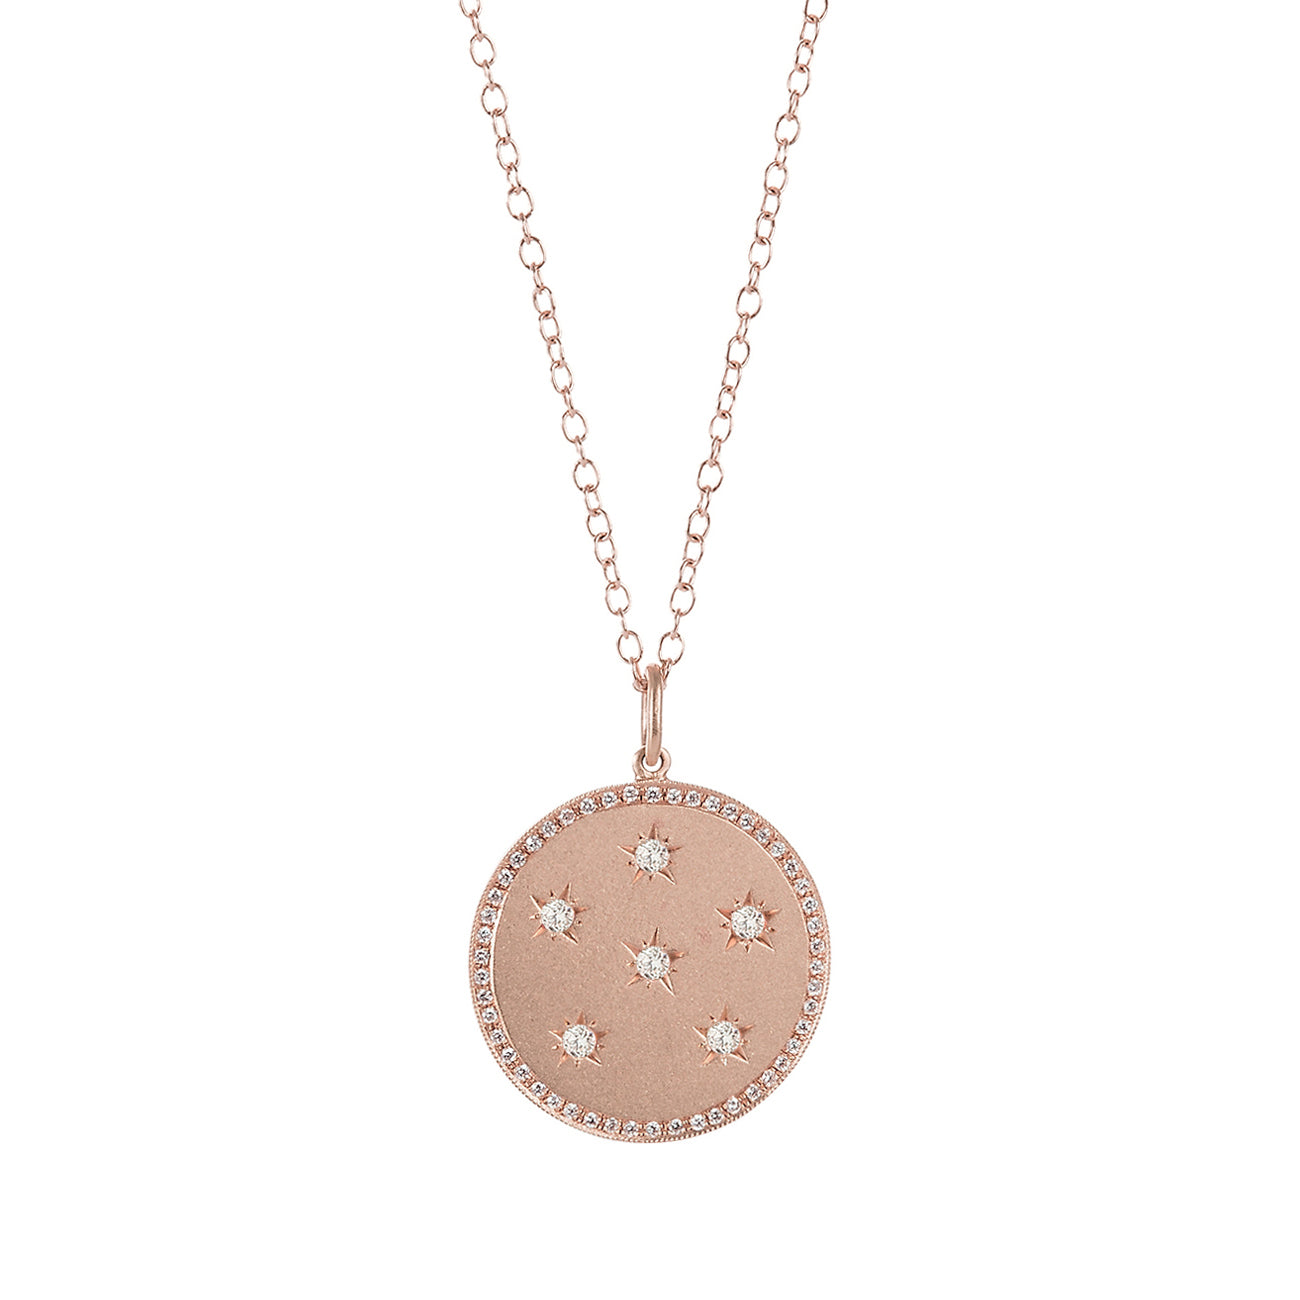 Large Diamond Full Moon Necklace - Andrea Fohrman - Necklaces | Broken English Jewelry